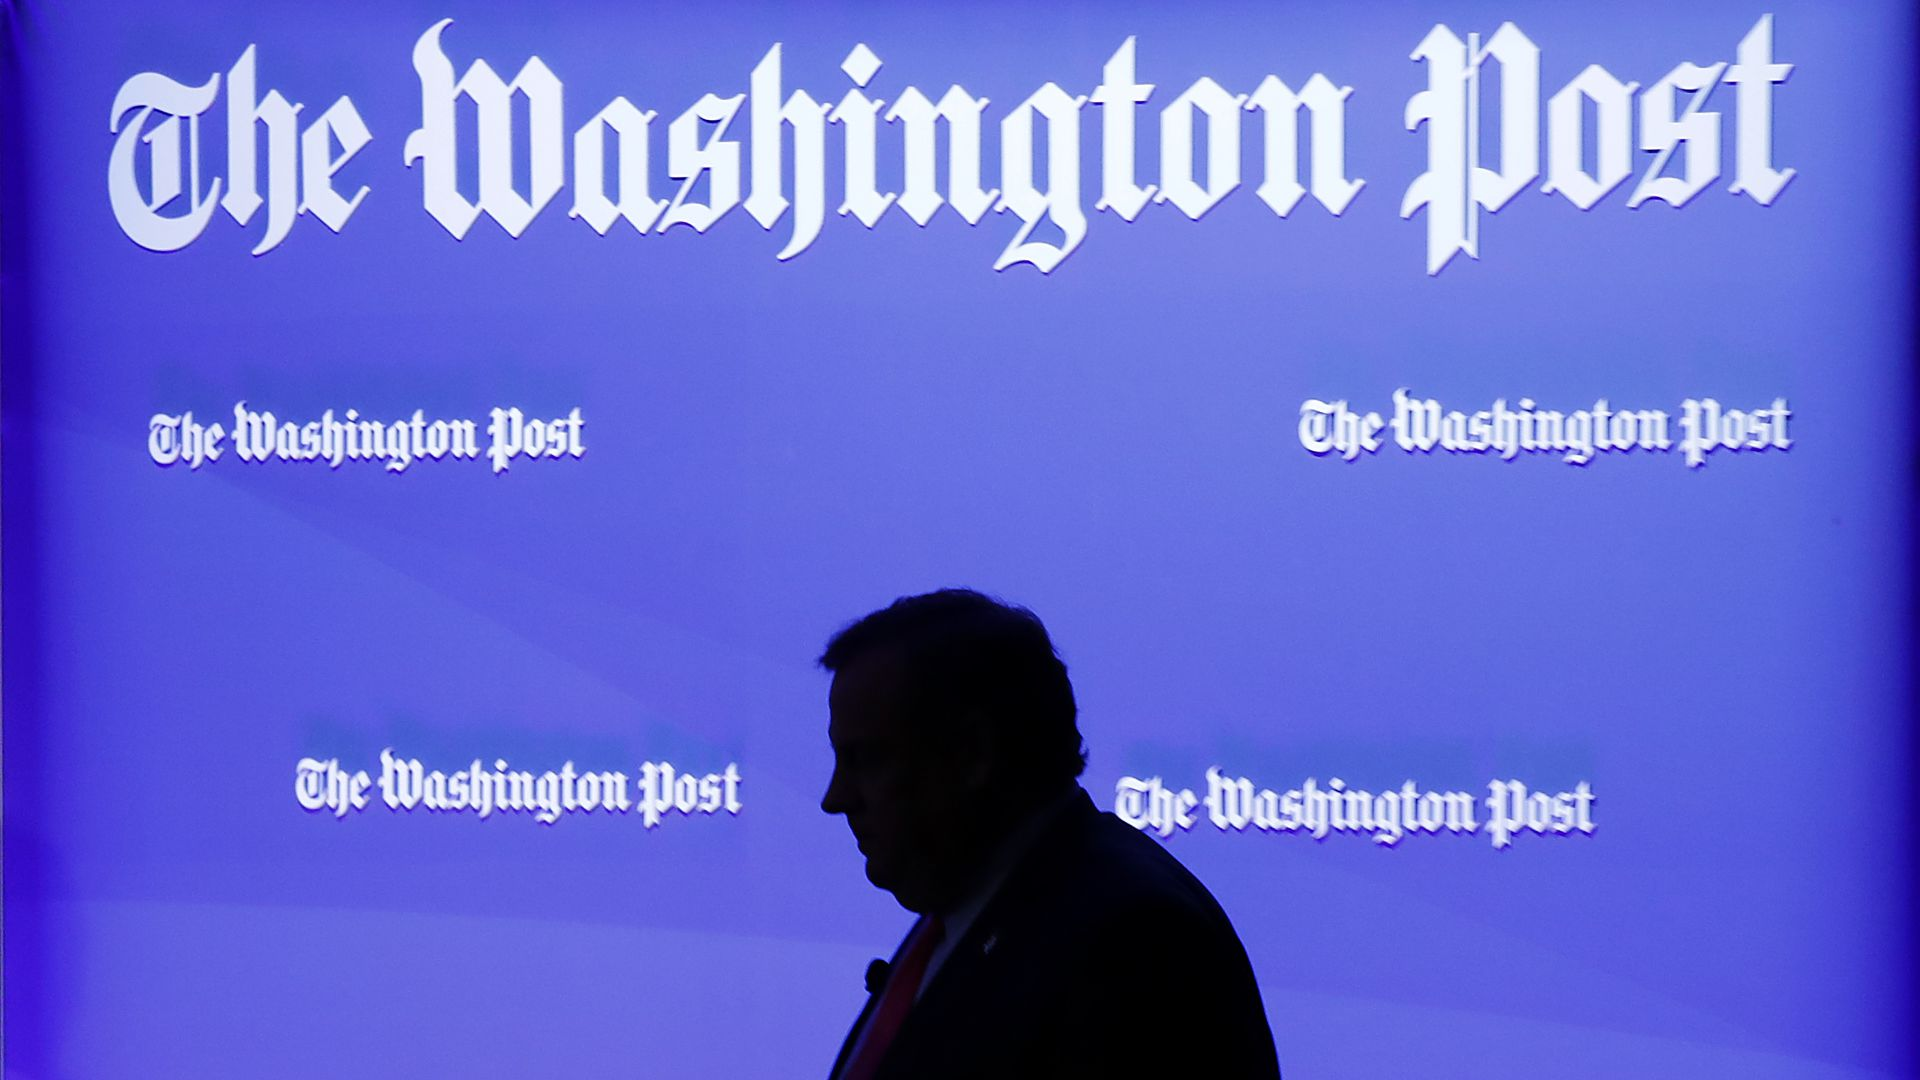 Silhouette of a man before wall with logos of The Washington Post.